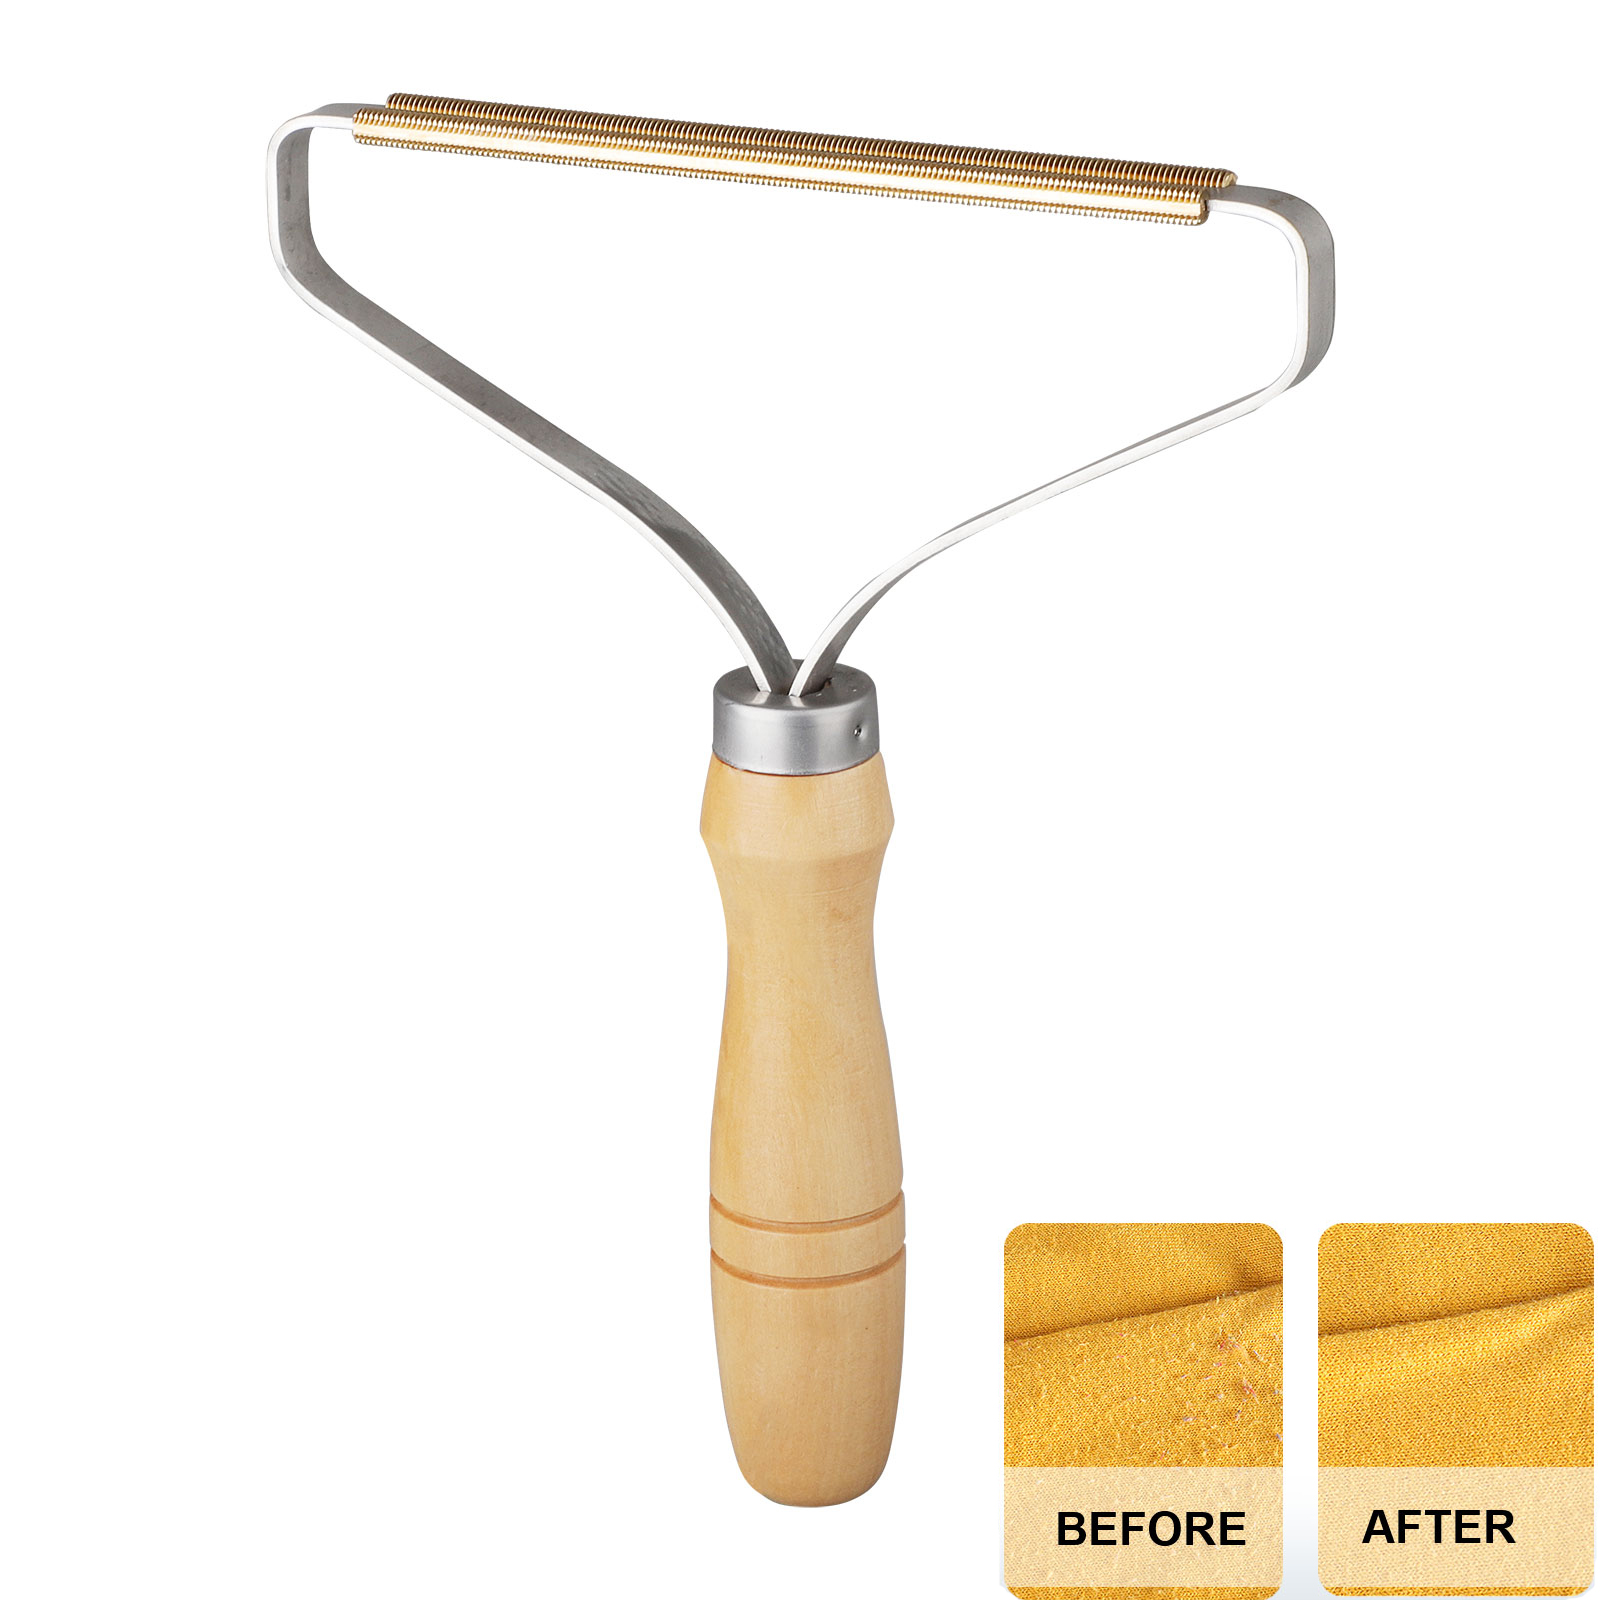 Manual Portable Lint Remover Simple Clothes Fuzz Fabric Wood Shaver Roller Brush